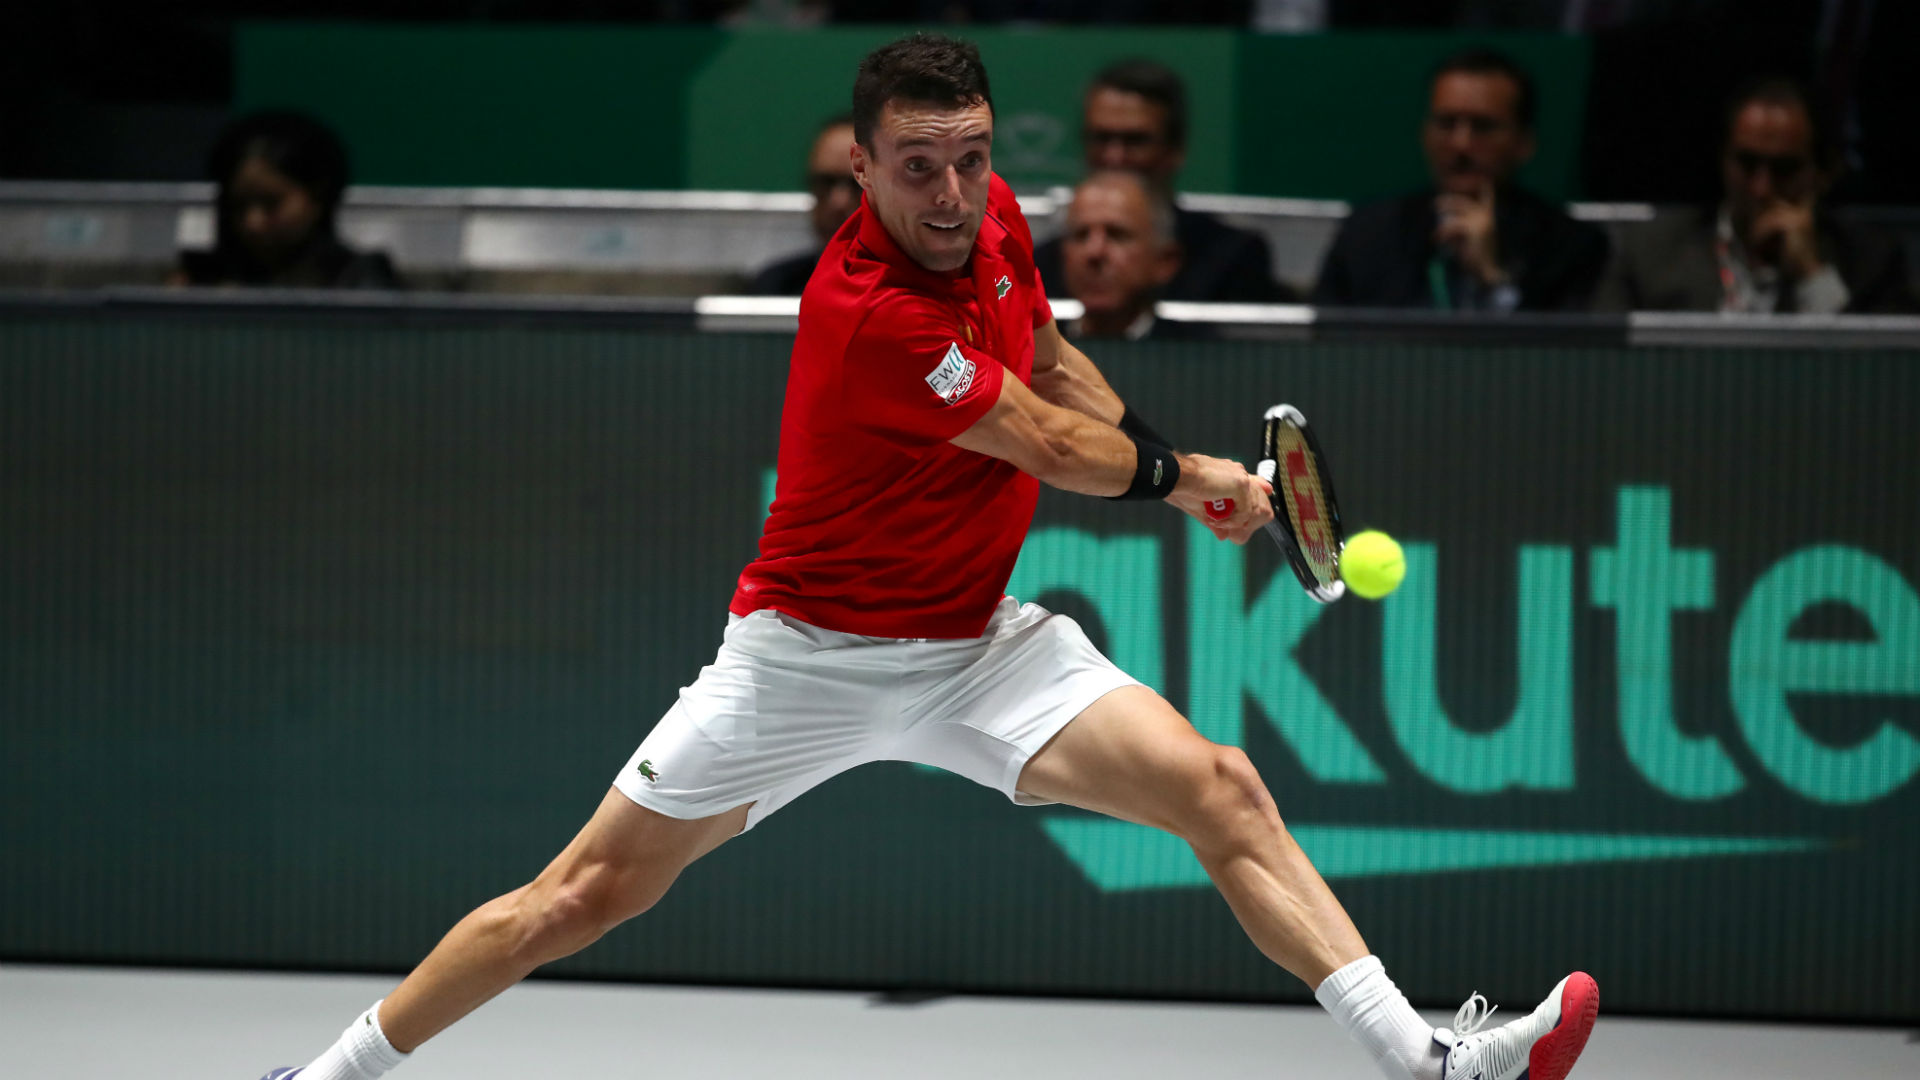 Bautista Agut withdraws from Spain's Davis Cup team after the death of his father